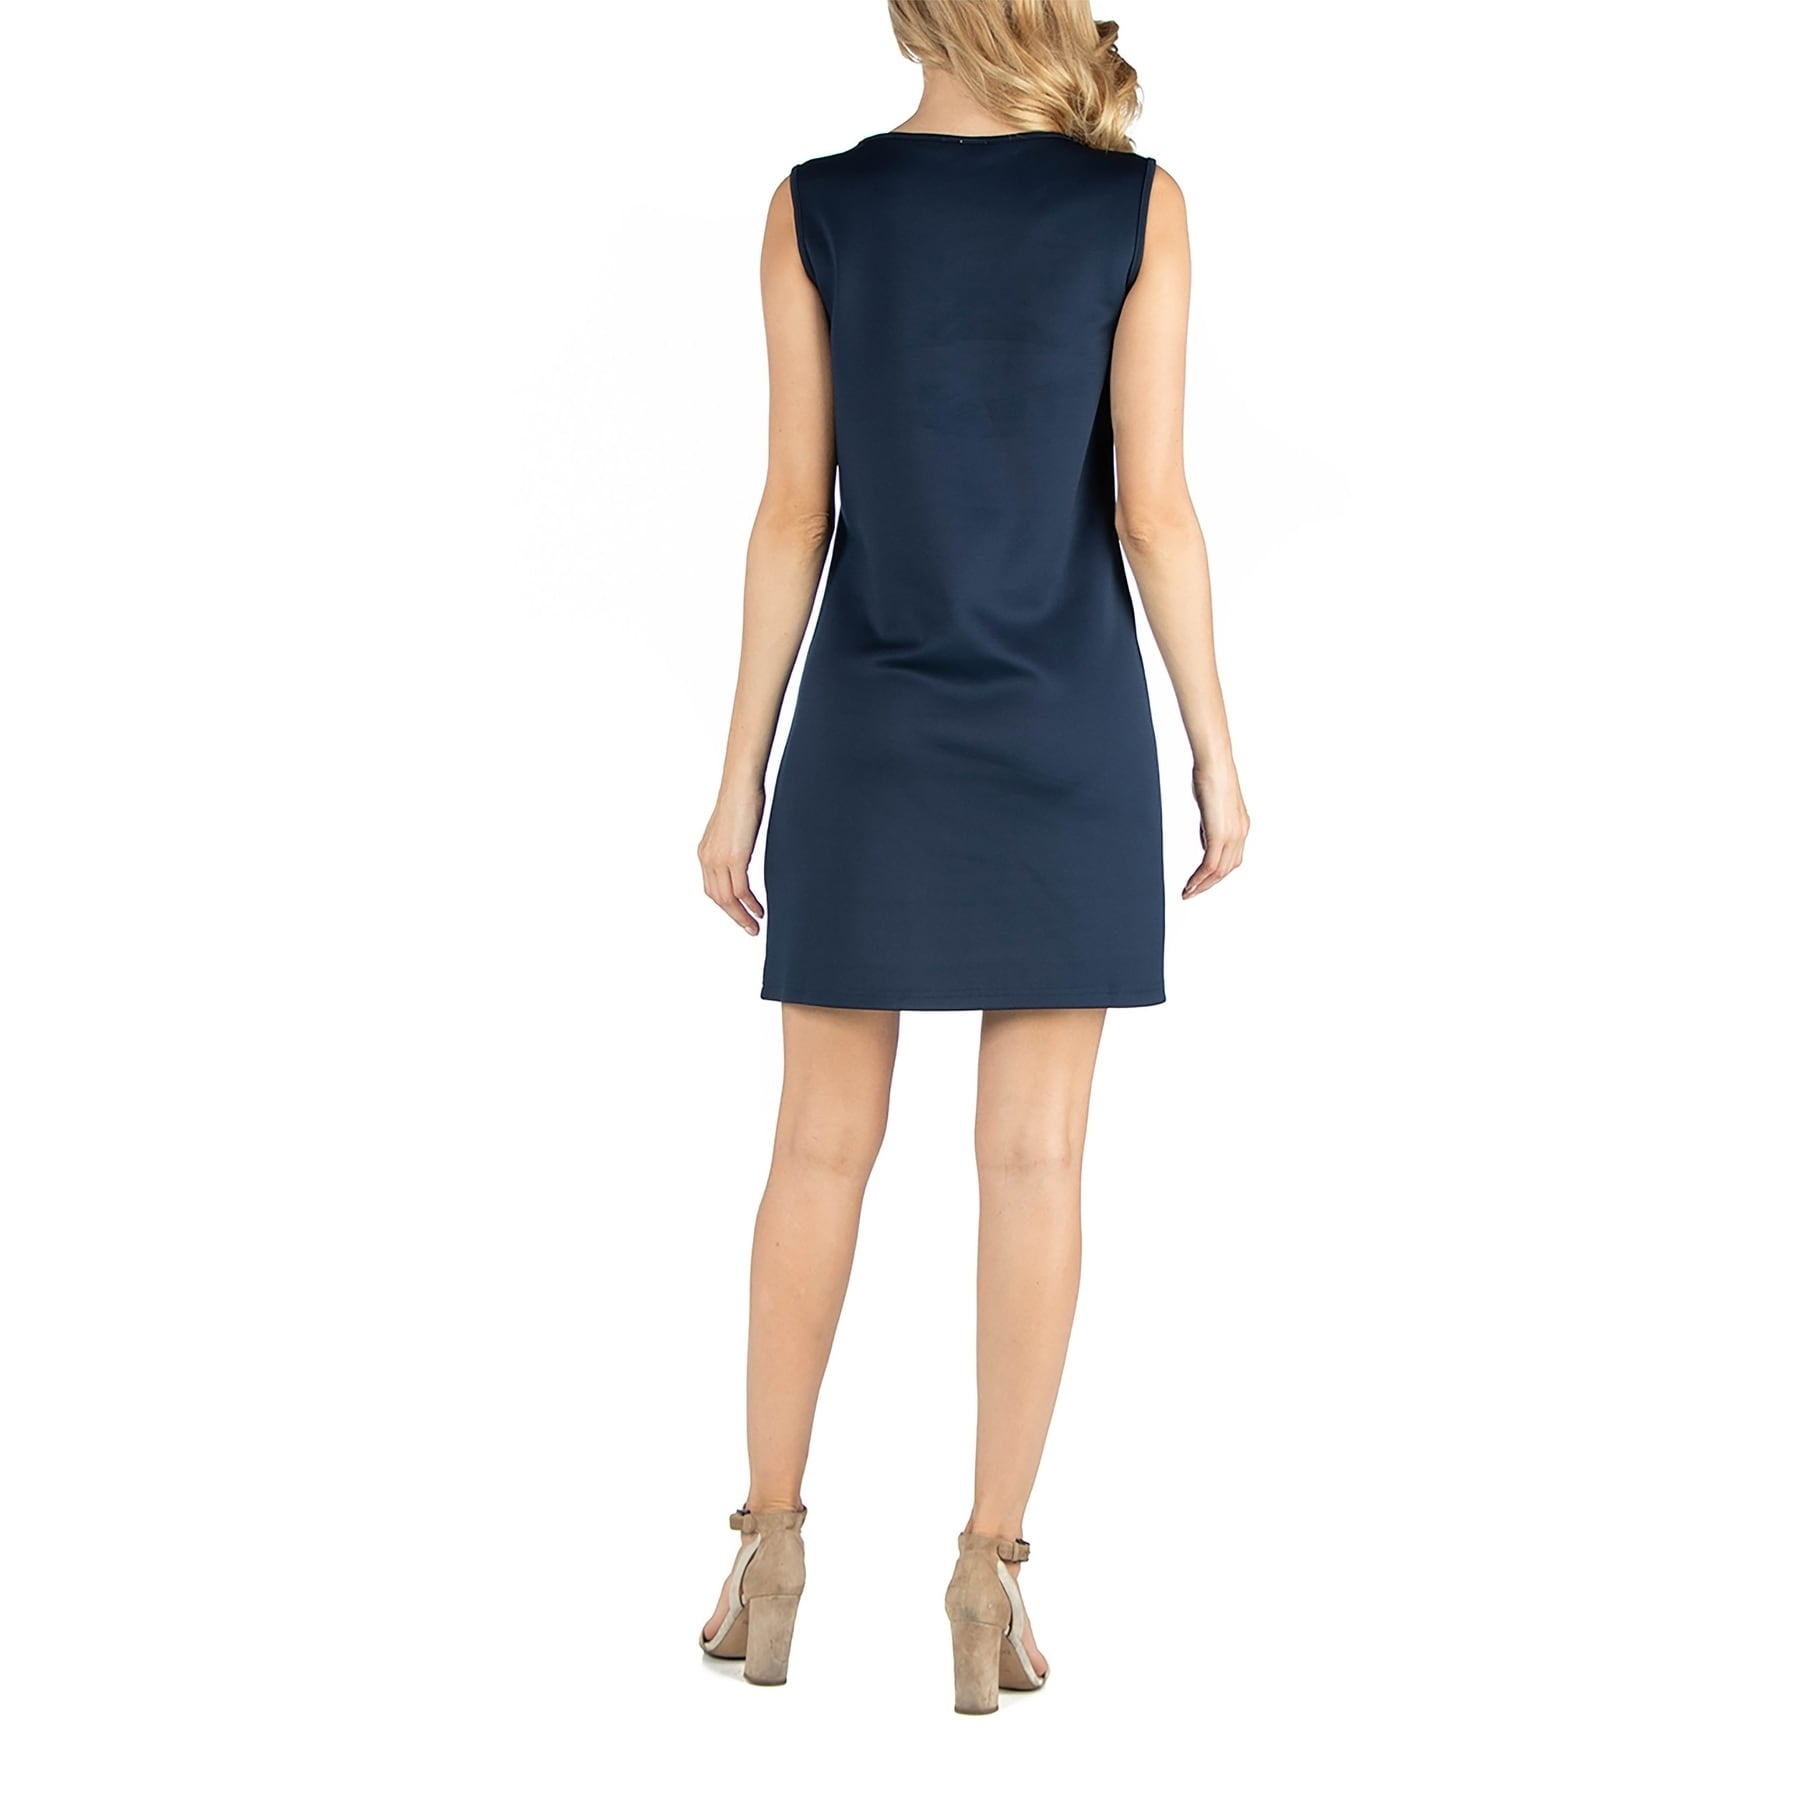 Scoop Neck Sleeveless Maternity Shift Dress With Bodice Detail Overstock 31149693